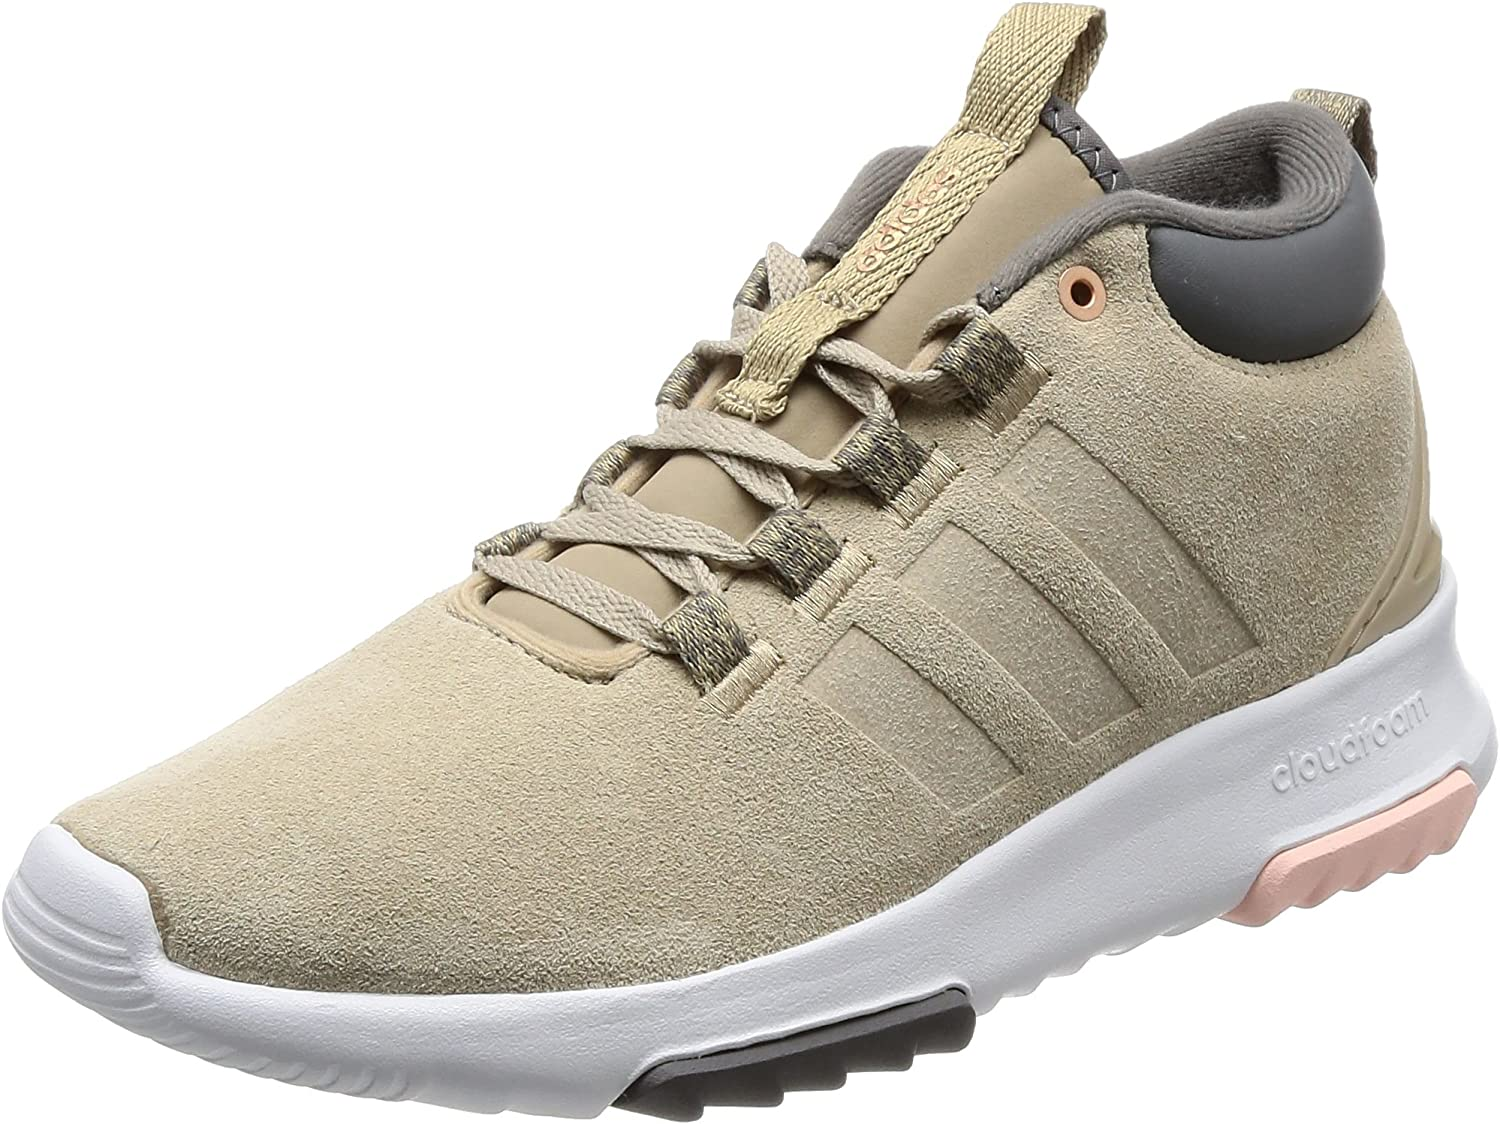 Adidas Neo CF Racer Mid WTR Womens Suede Sneakers shoes